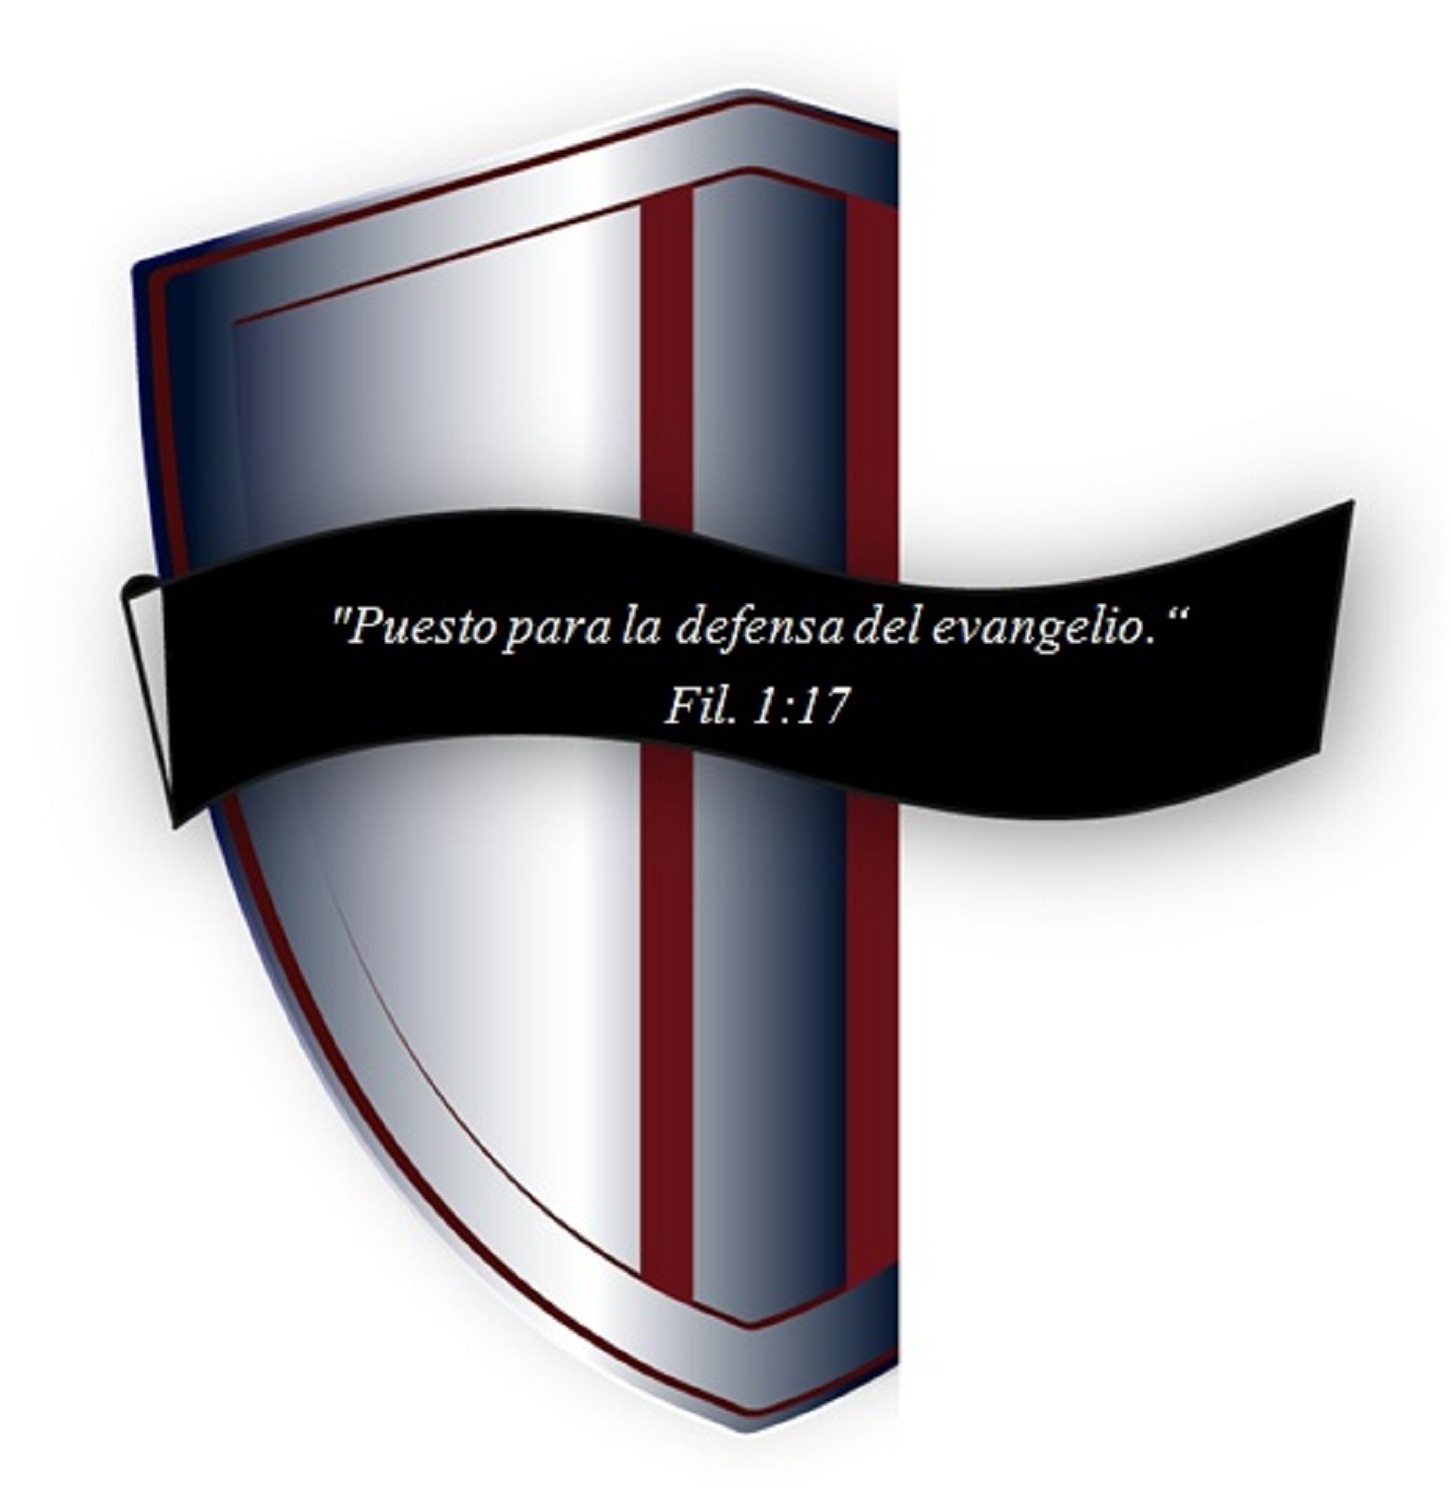 Veritas Fidei » Podcast – Verdad Fe y Apologetica